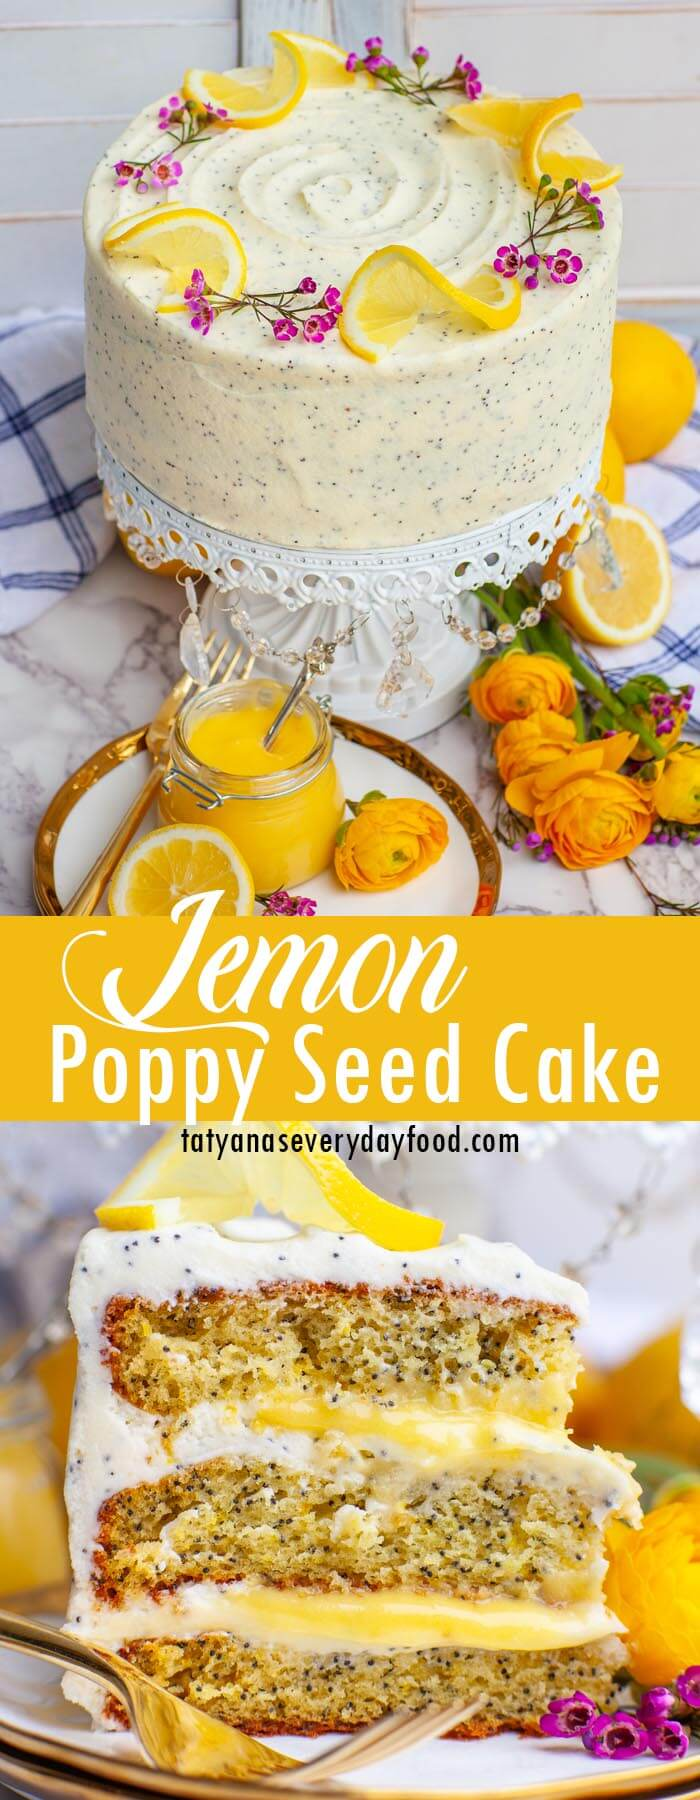 Lemon Poppy Seed Cake video recipe